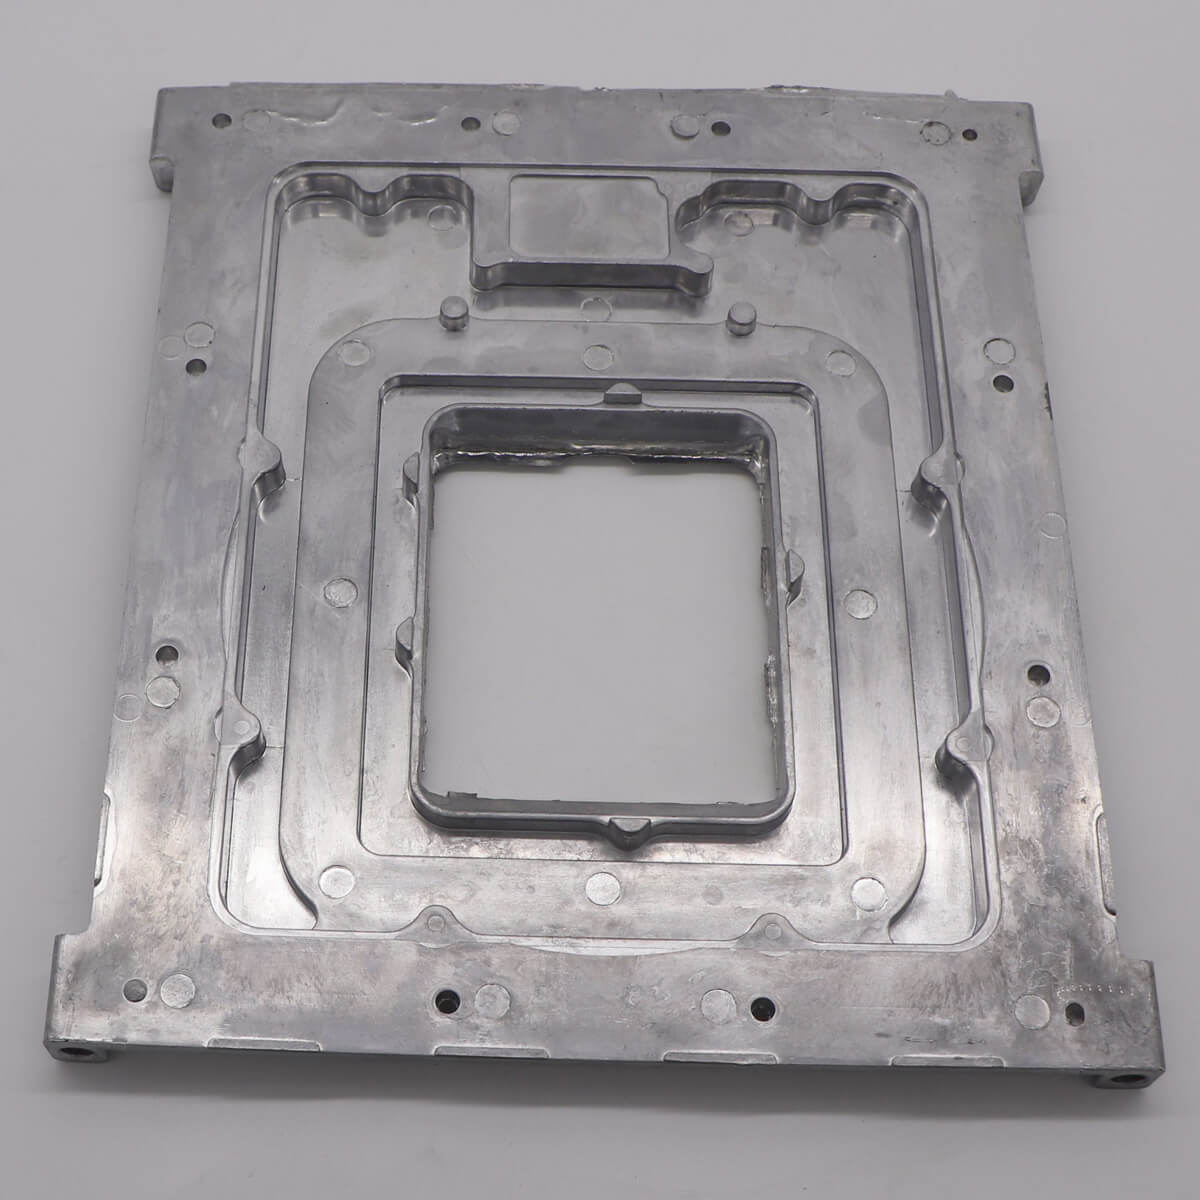 Xavier aluminum alloy cnc milling parts front plate free delivery-1